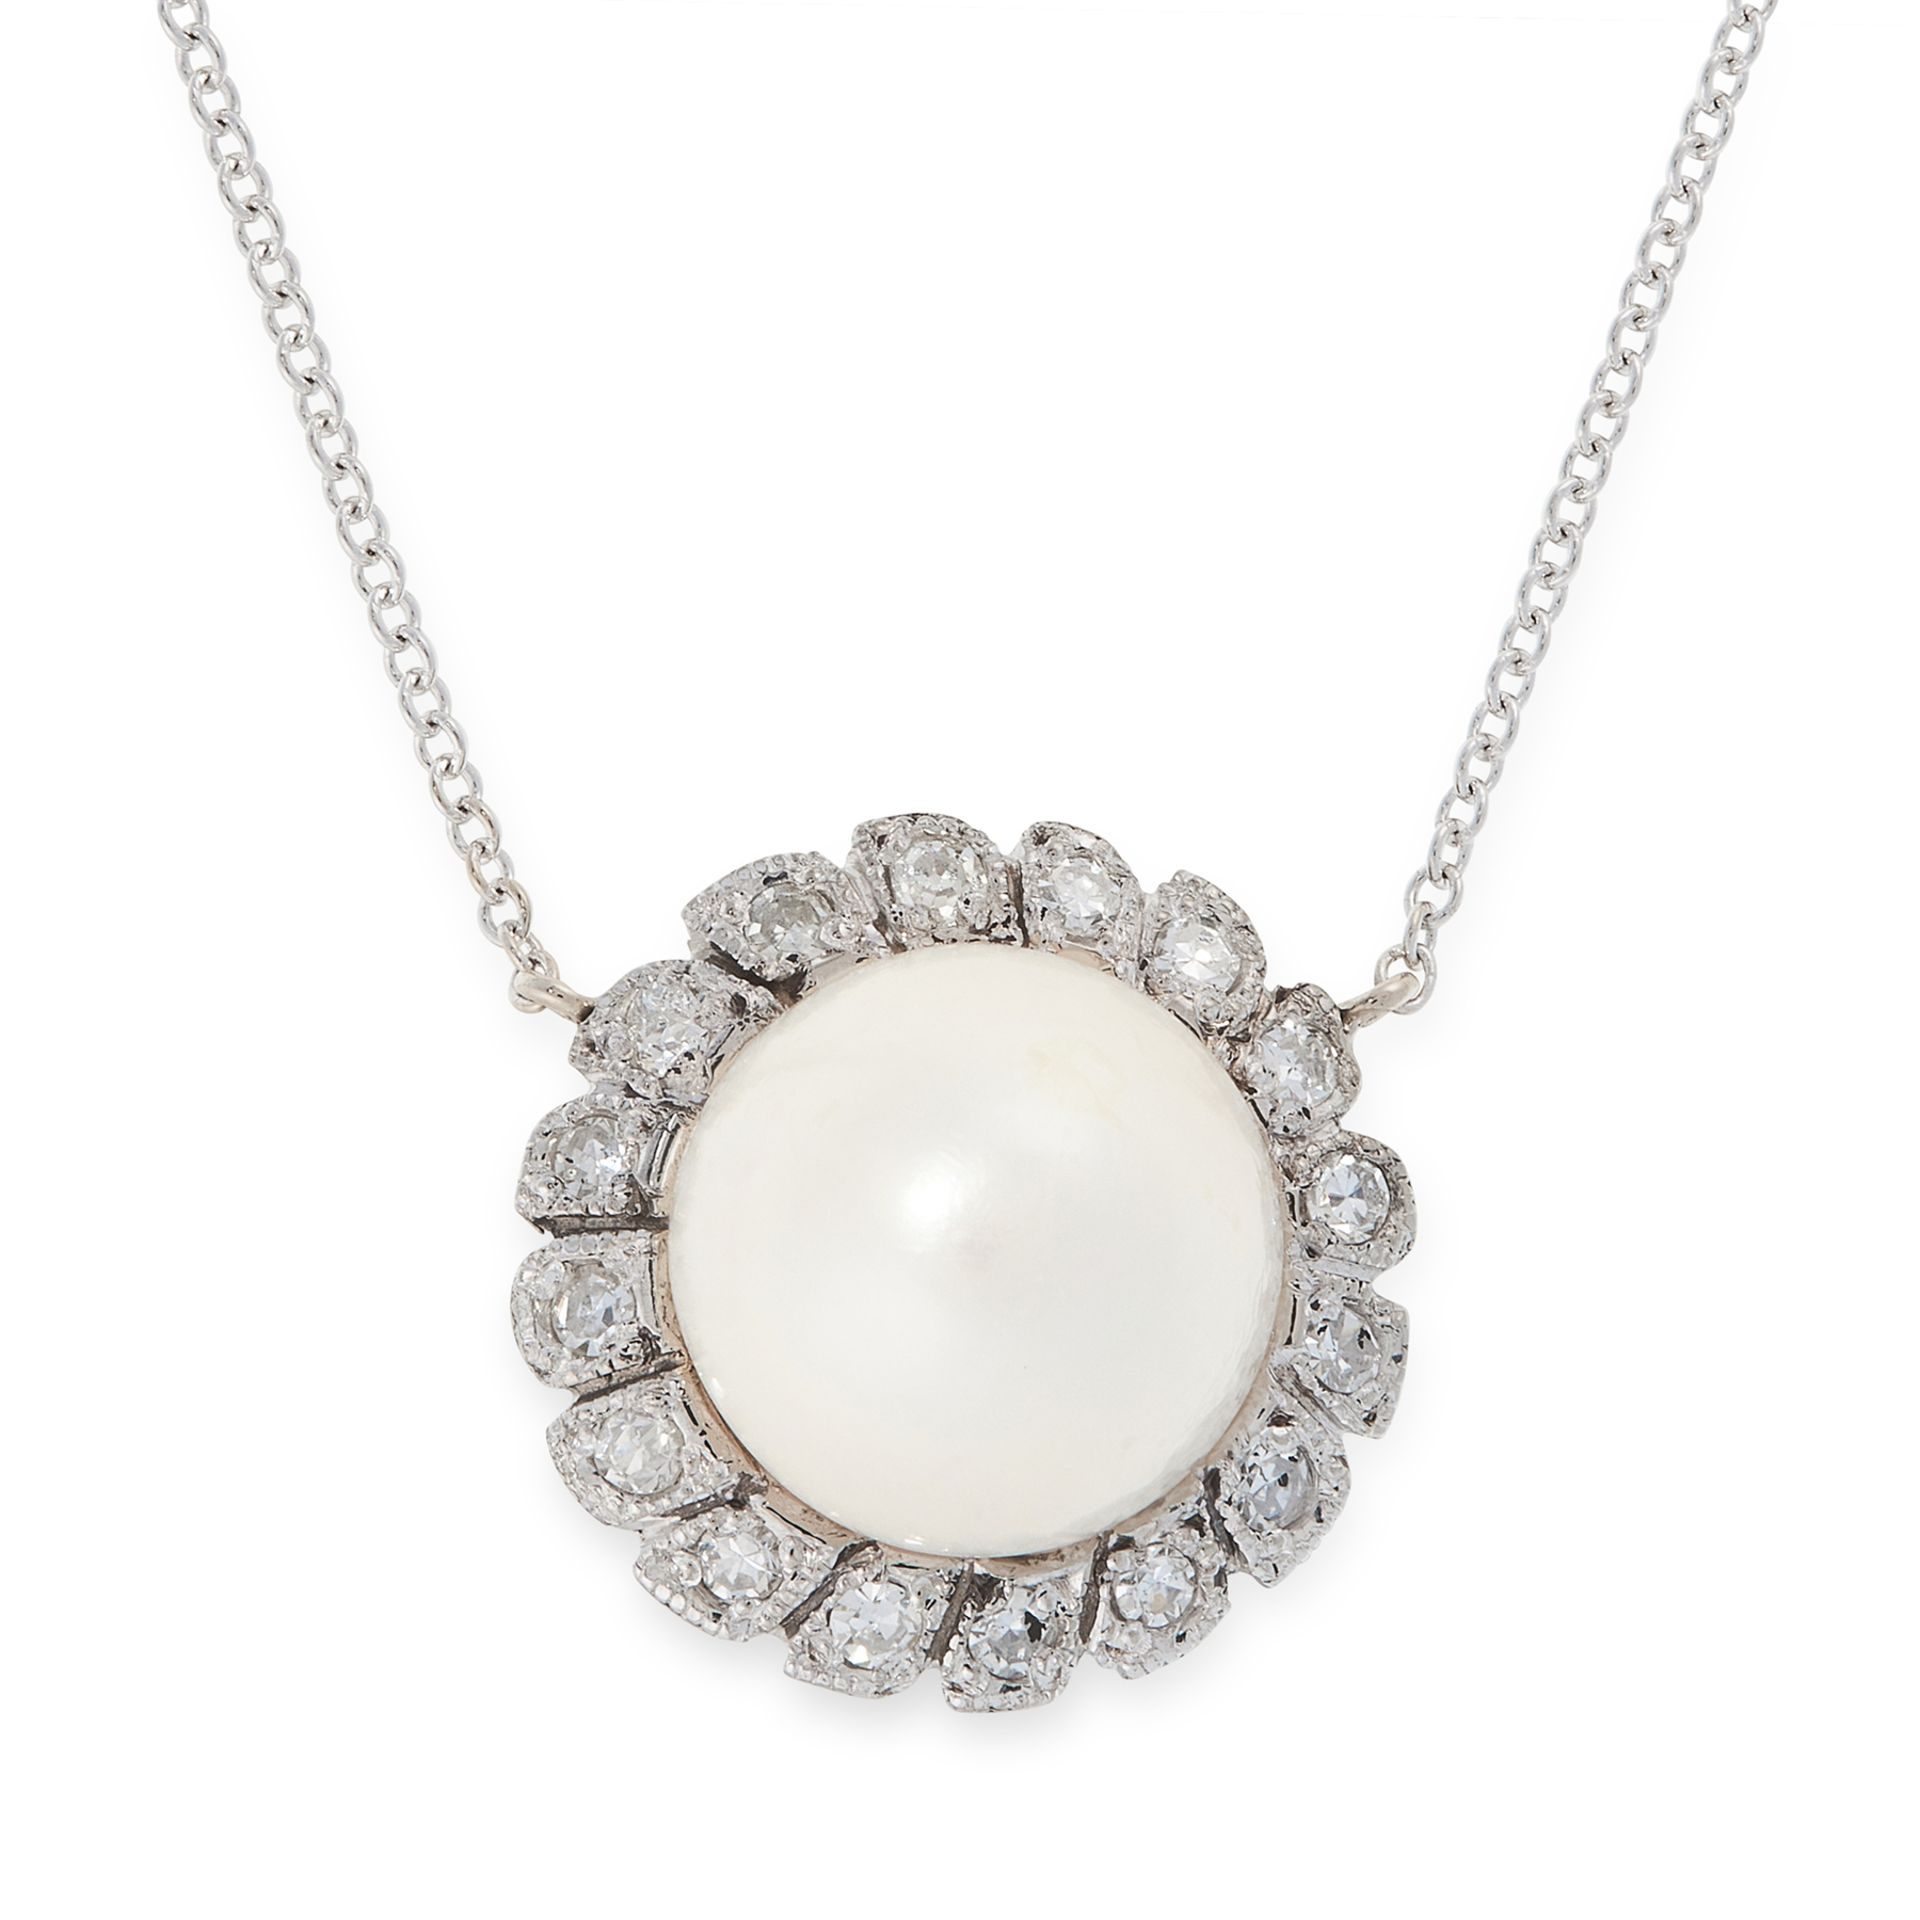 A PEARL AND DIAMOND PENDANT NECKLACE in 18ct white gold, set with a pearl of 9.9mm within a border